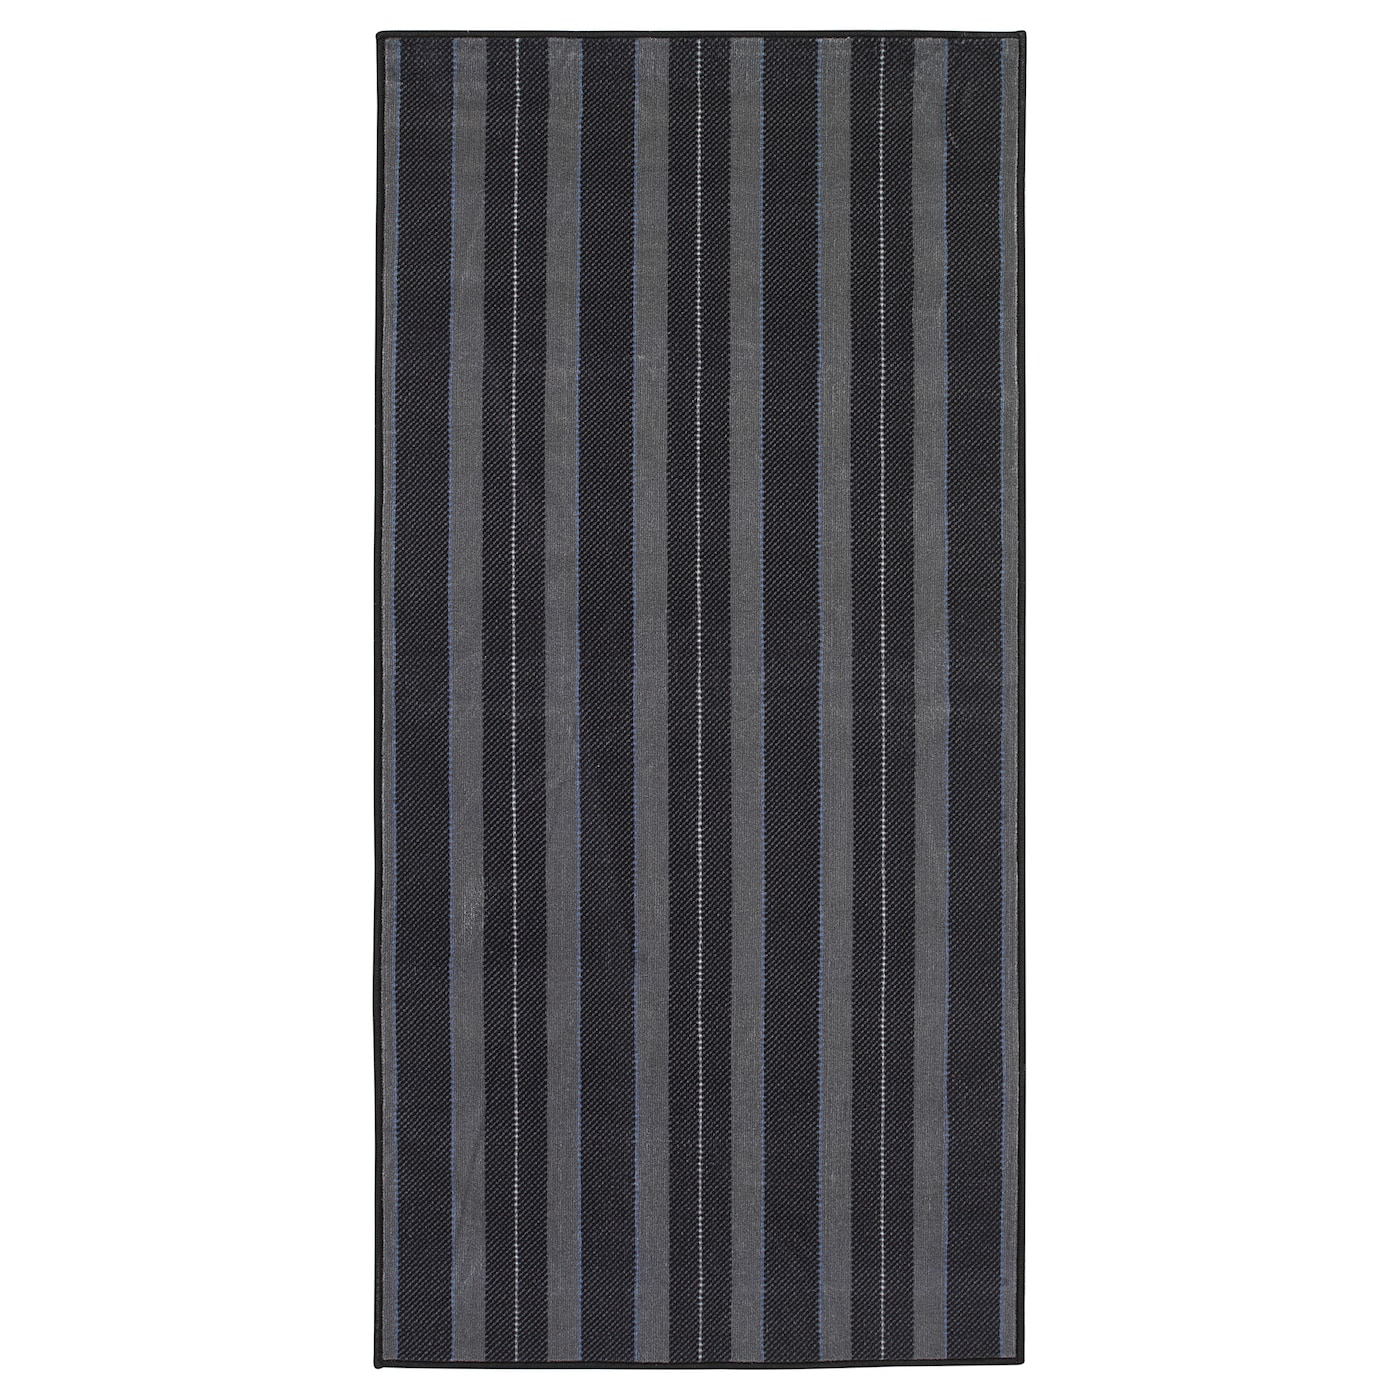 IKEA VINTER 2018 rug, low pile